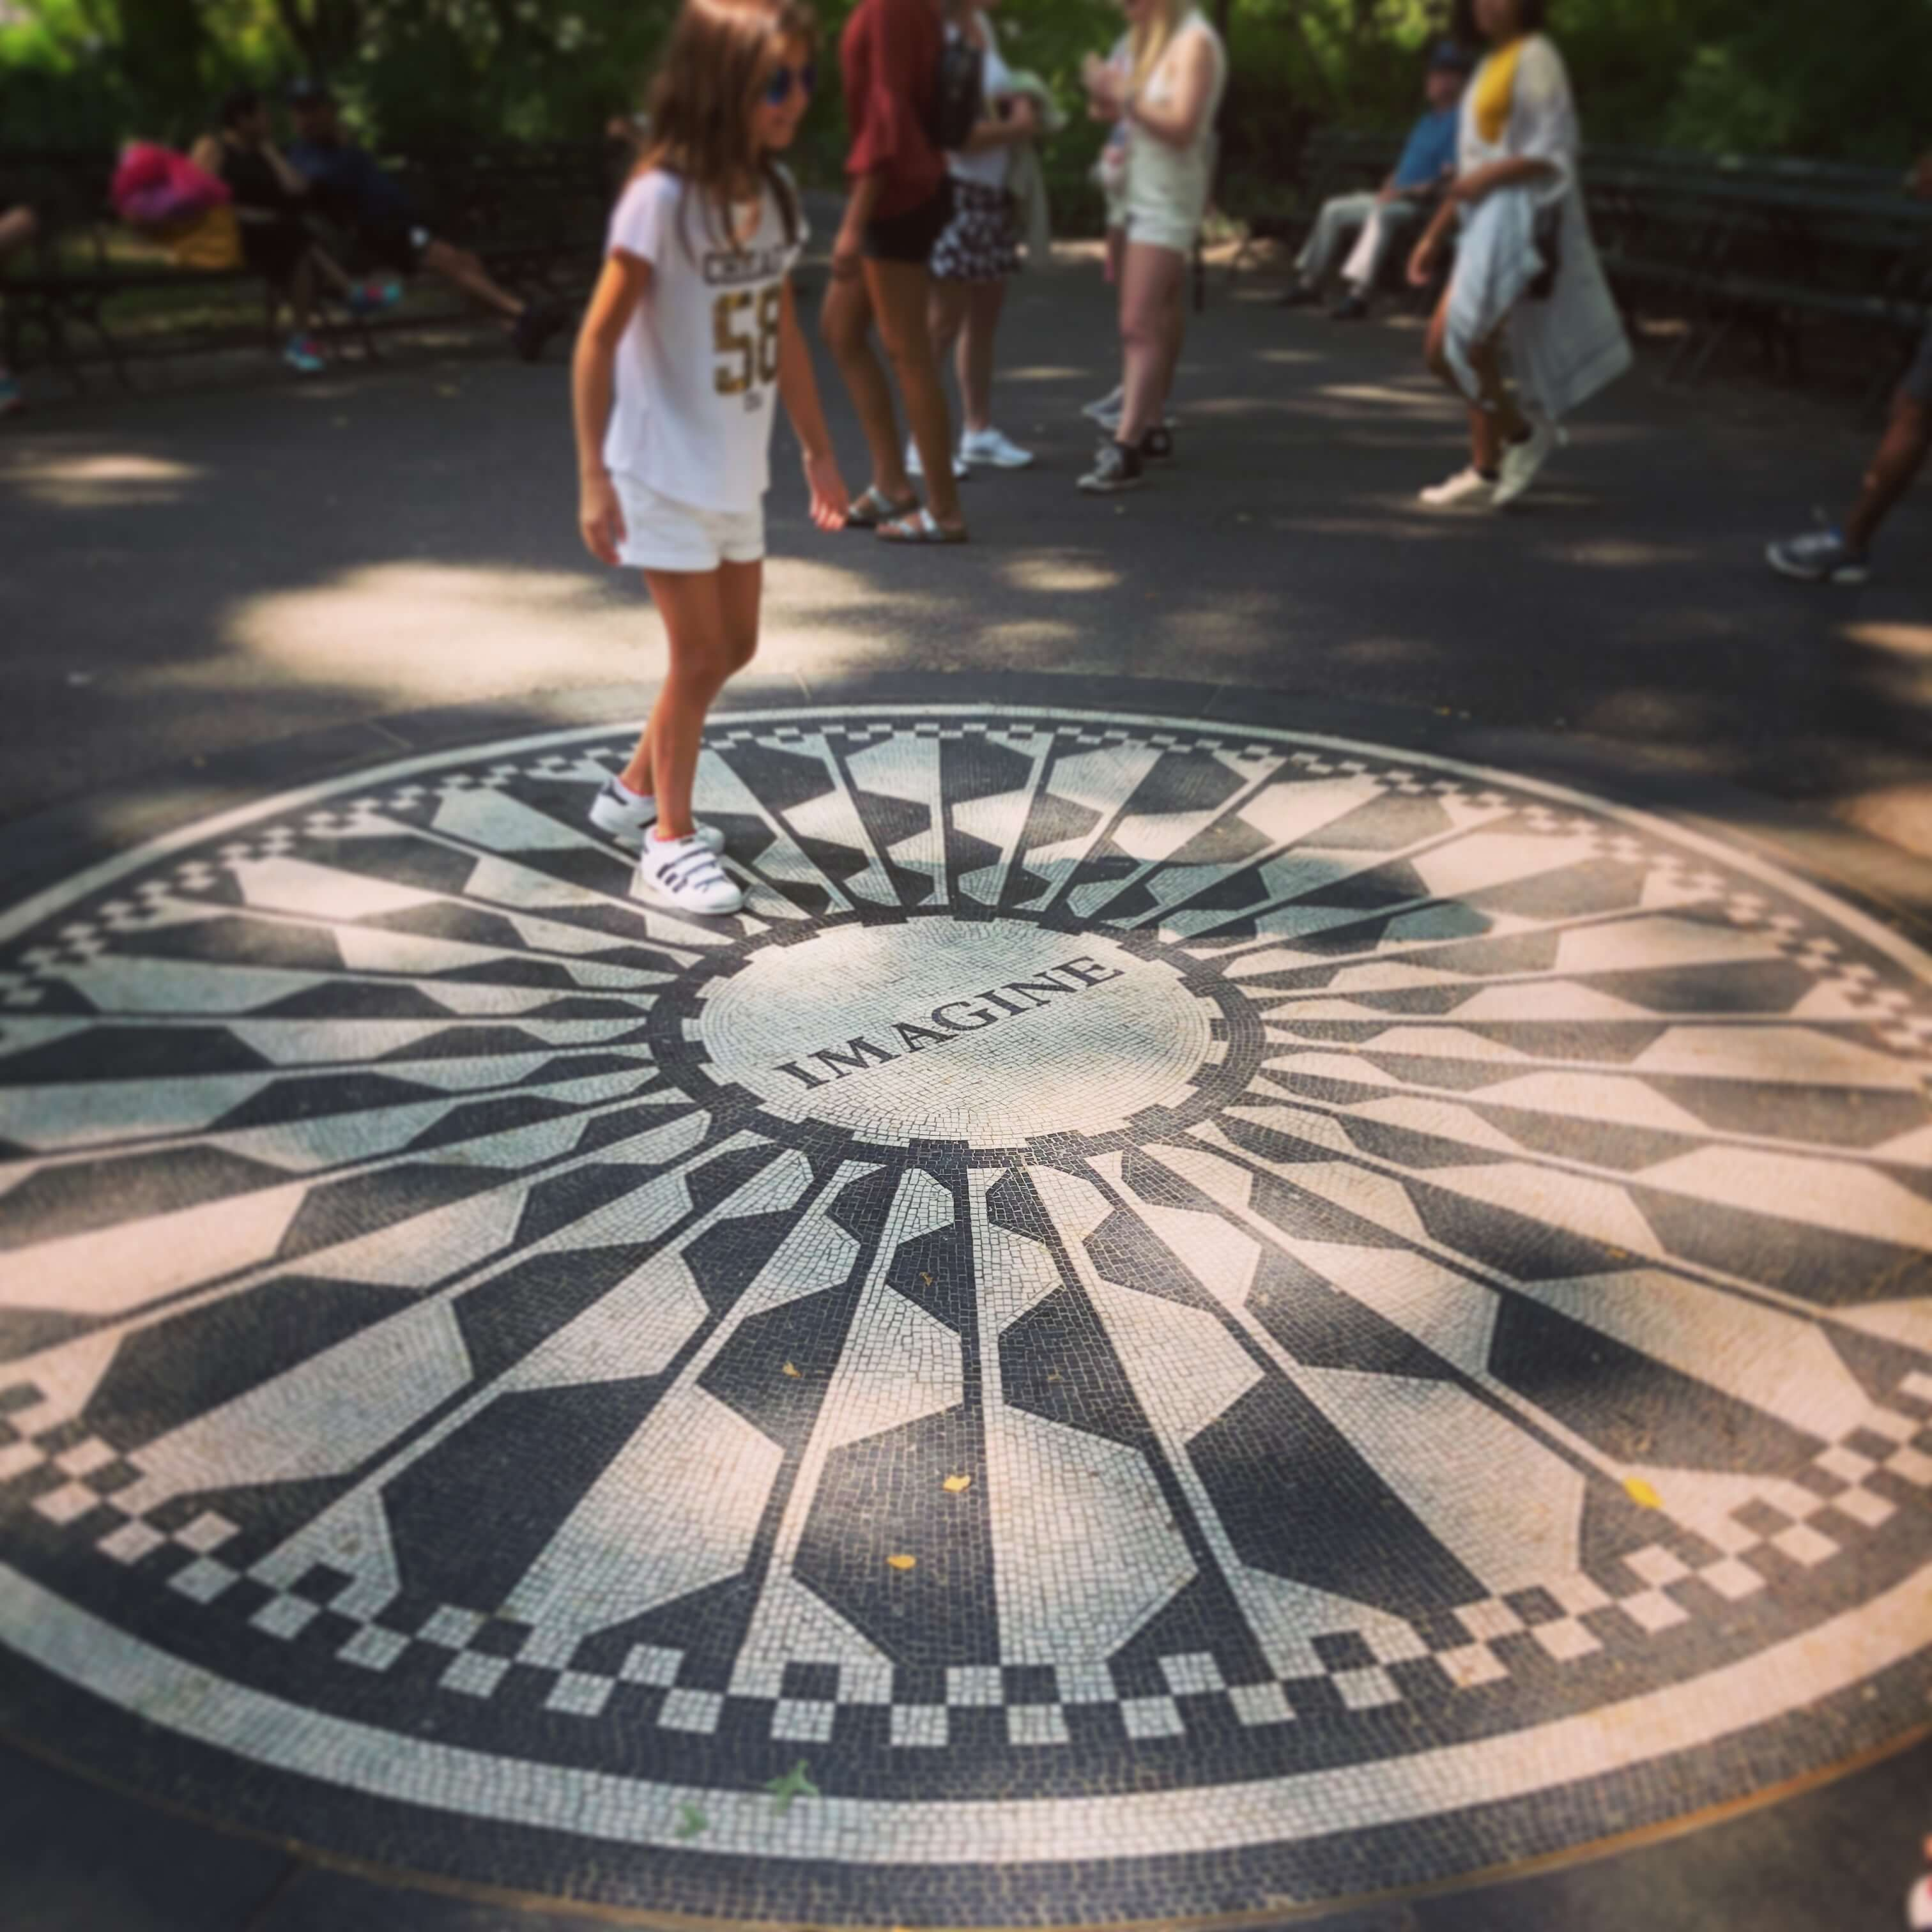 Strawberry Fields —John Lennon memorial in Central Park, New York City